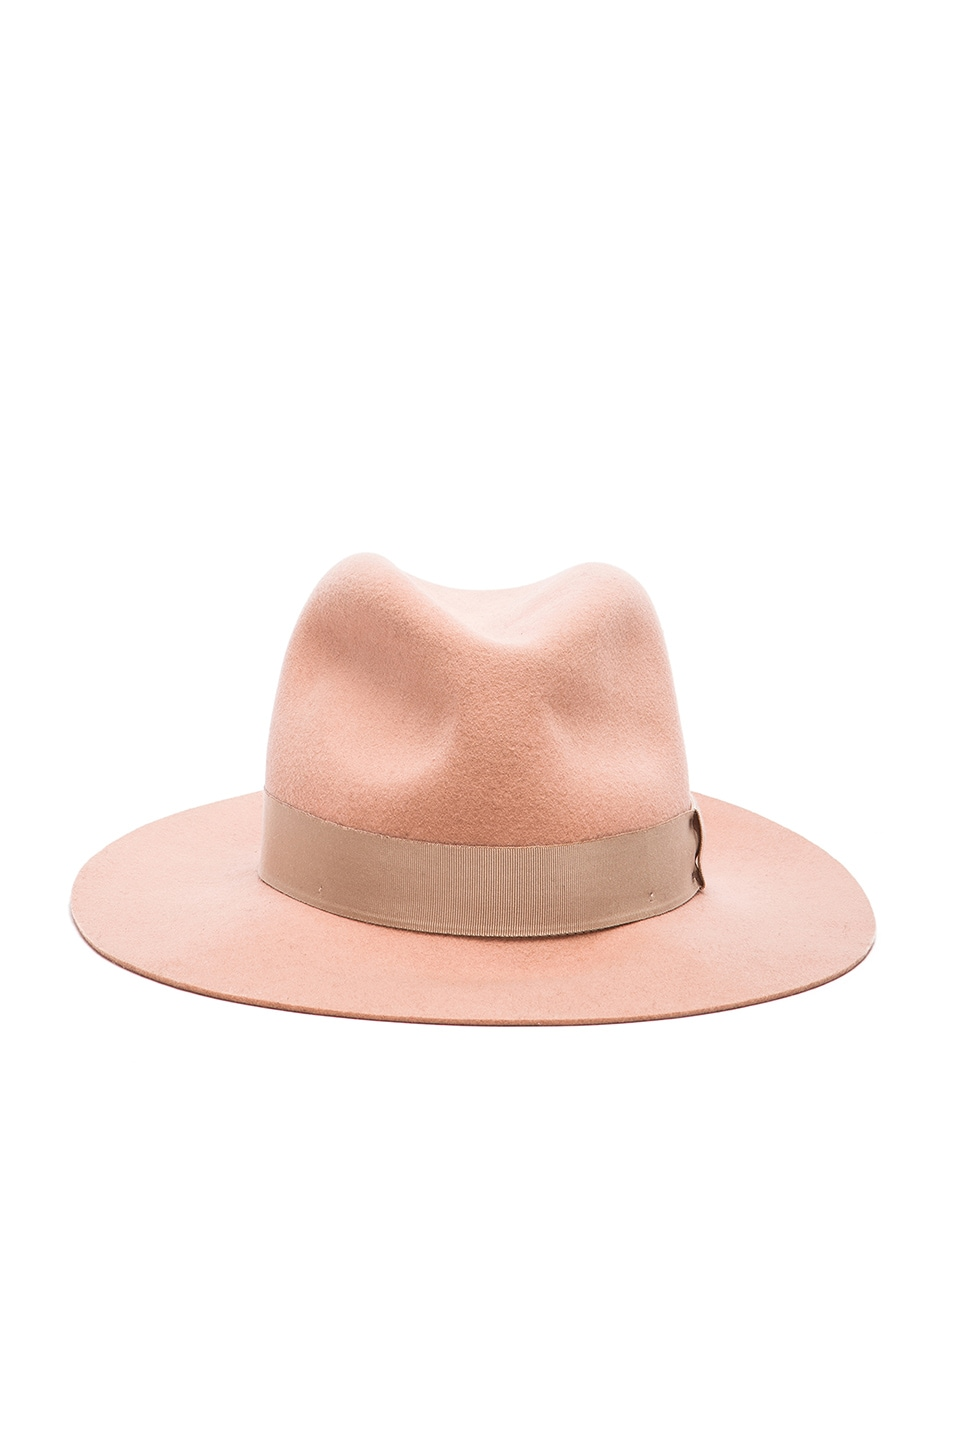 Image 1 of Rag & Bone Floppy Brim Fedora Hat in Cork